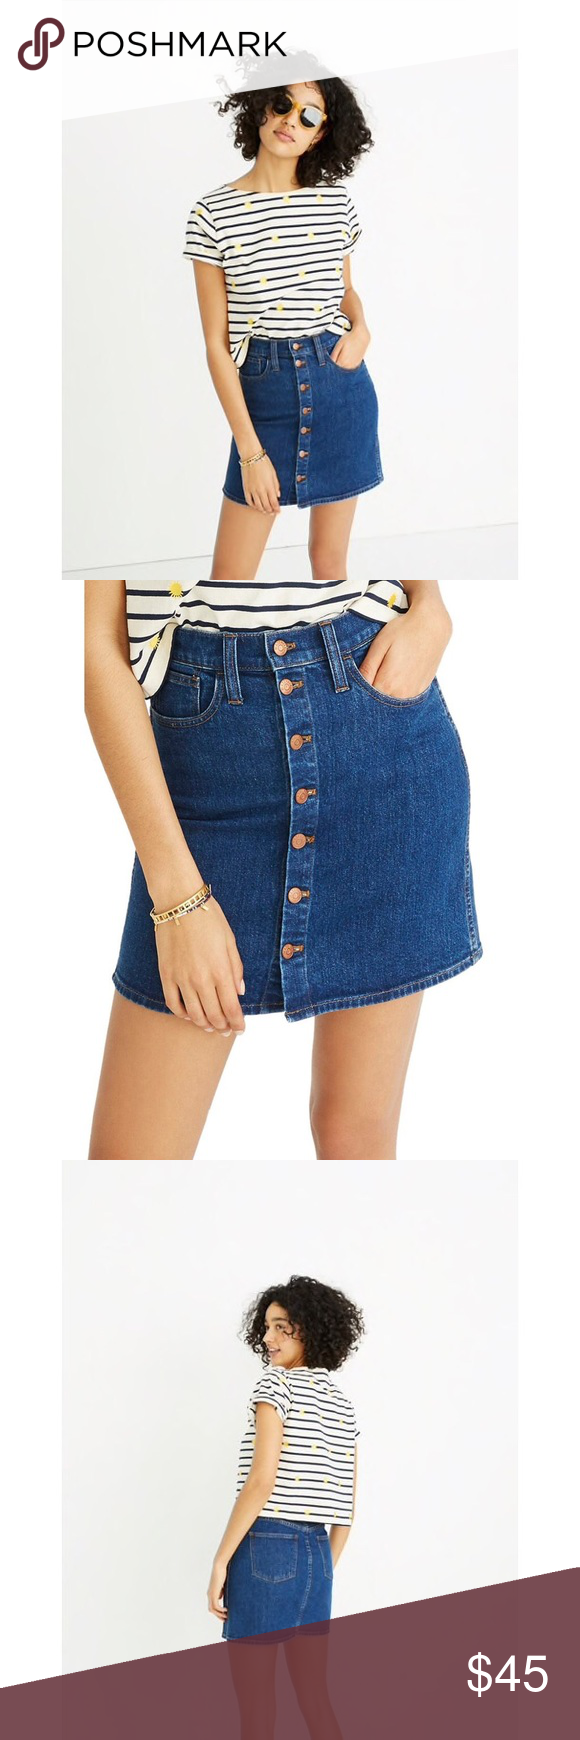 ac010df773 Madewell Denim Straight Button Up Mini Skirt Color is arroyo wash.  Excellent condition with no